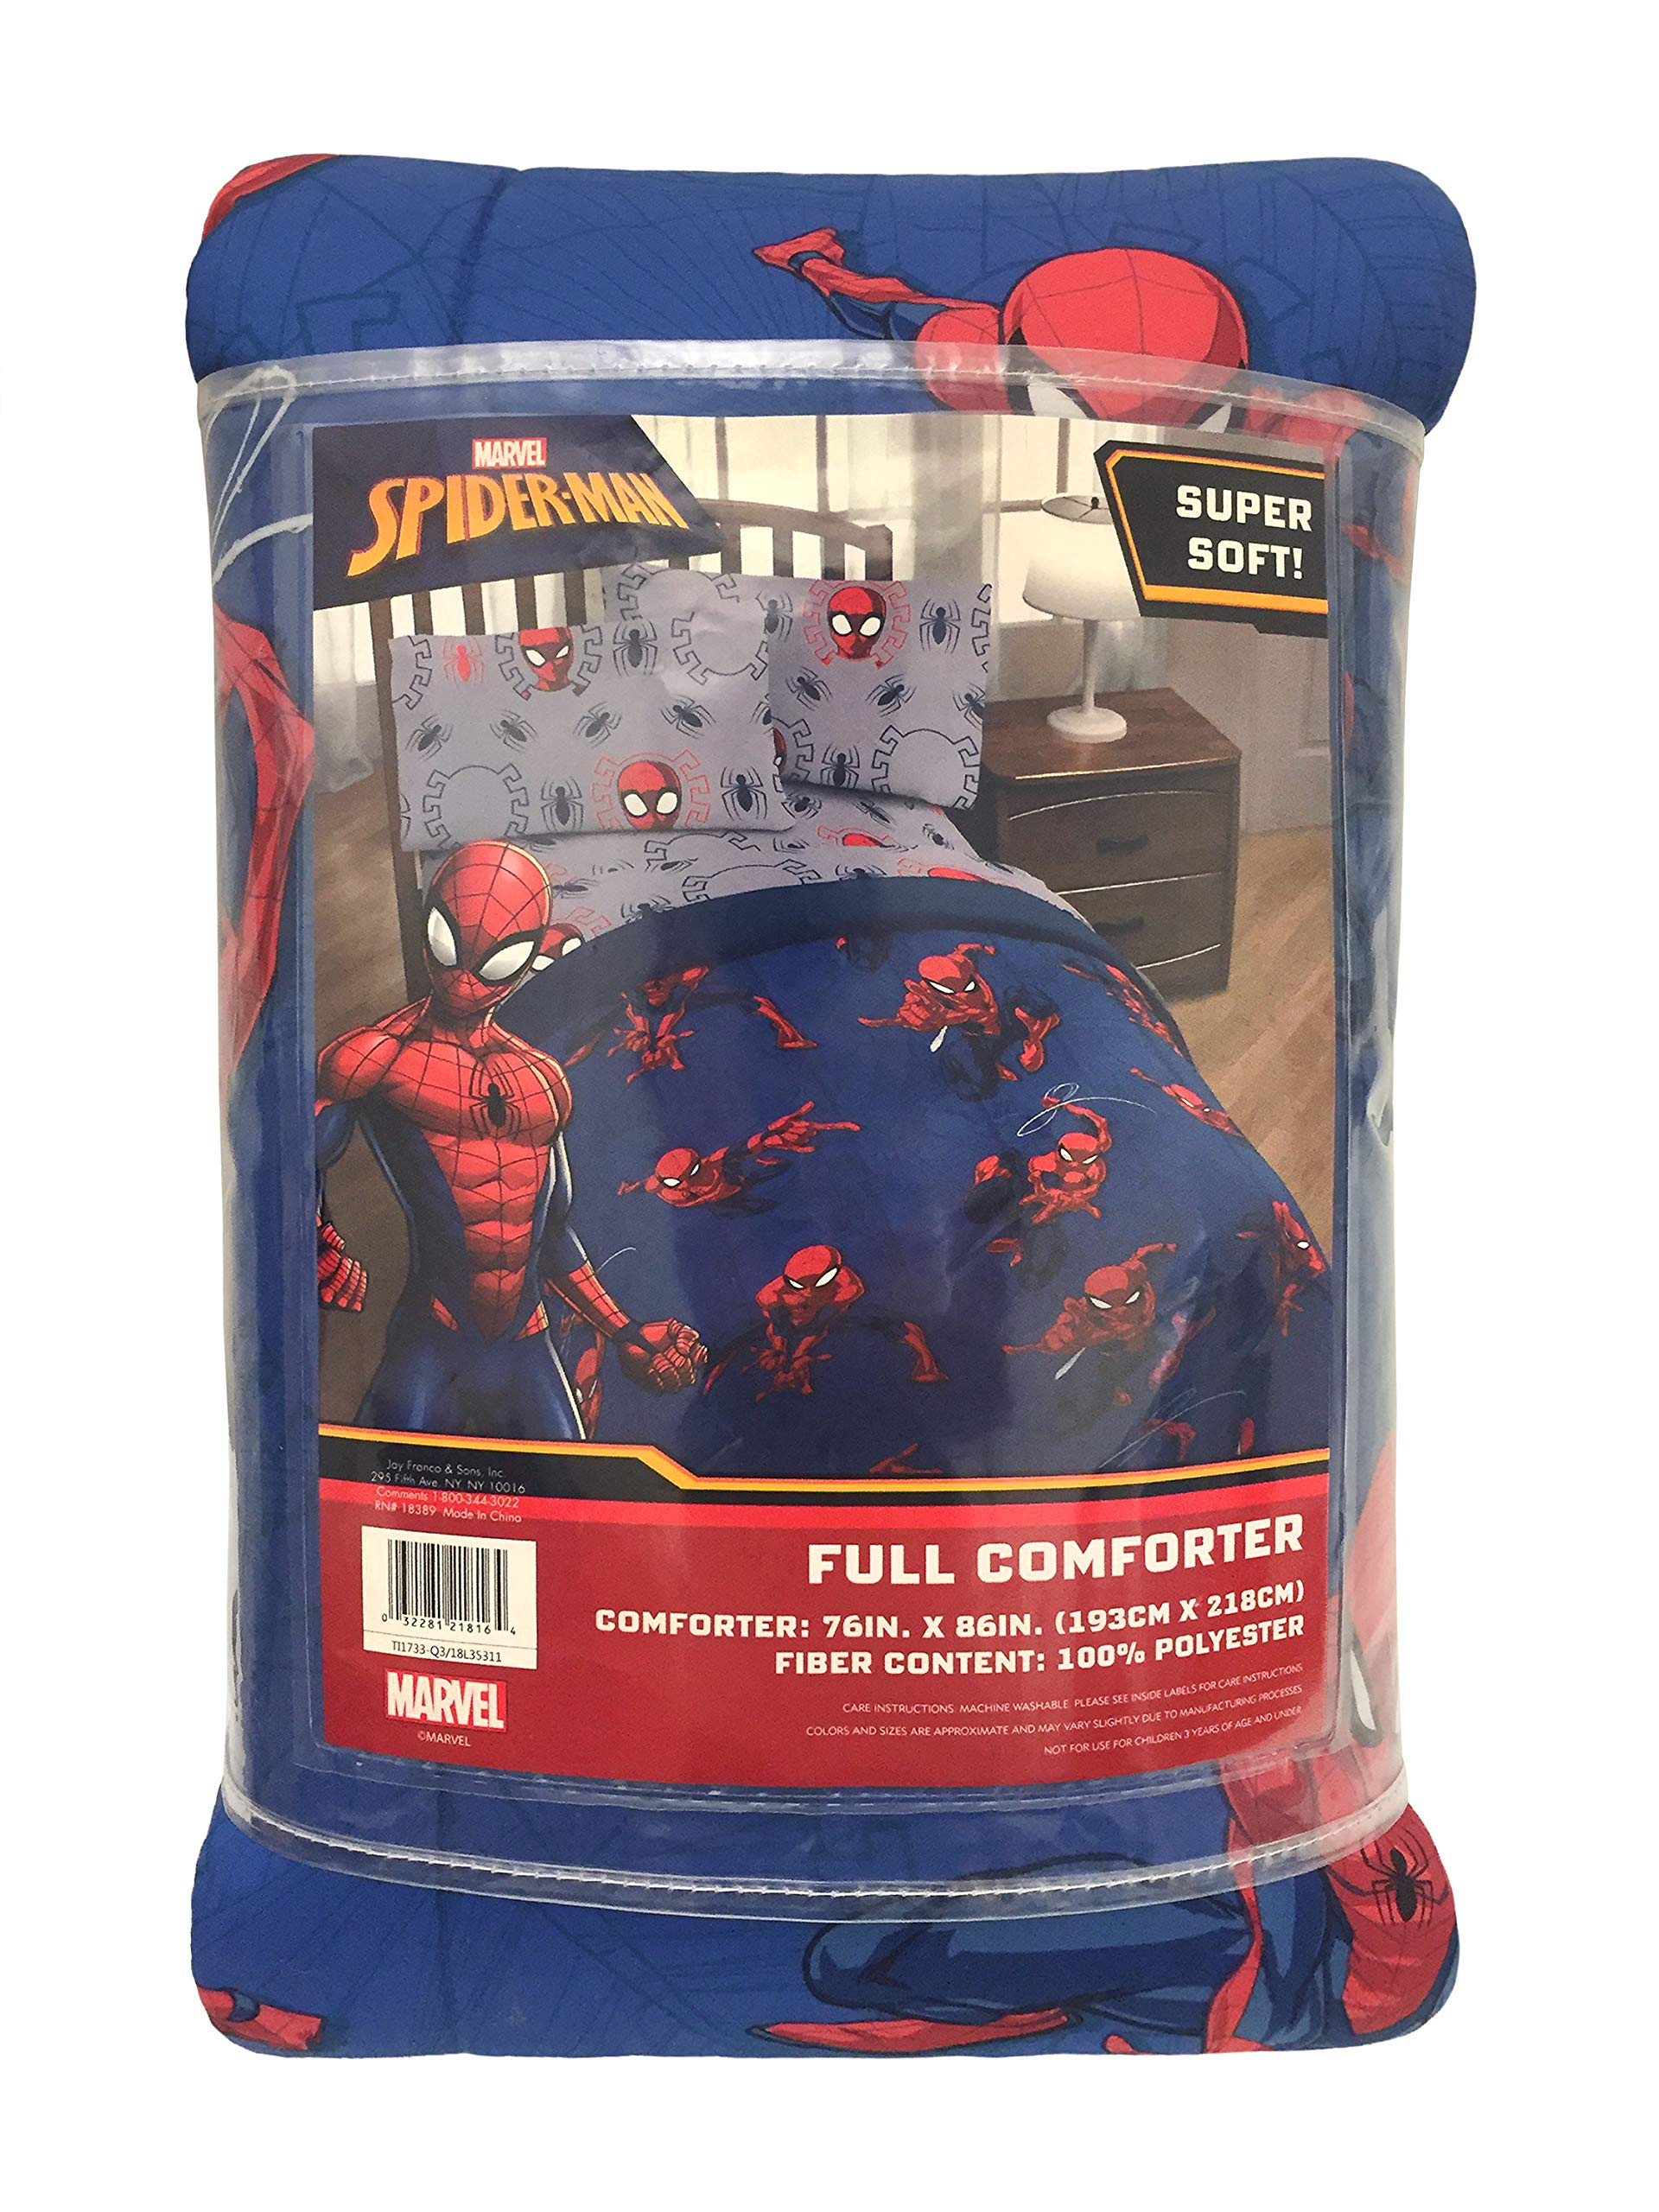 Jay Franco Marvel Spiderman Spidey Crawl Full Comforter - Super Soft Kids Reversible Bedding - Fade Resistant Polyester Microfiber Fill (Official Marvel Product) by Jay Franco (Image #4)